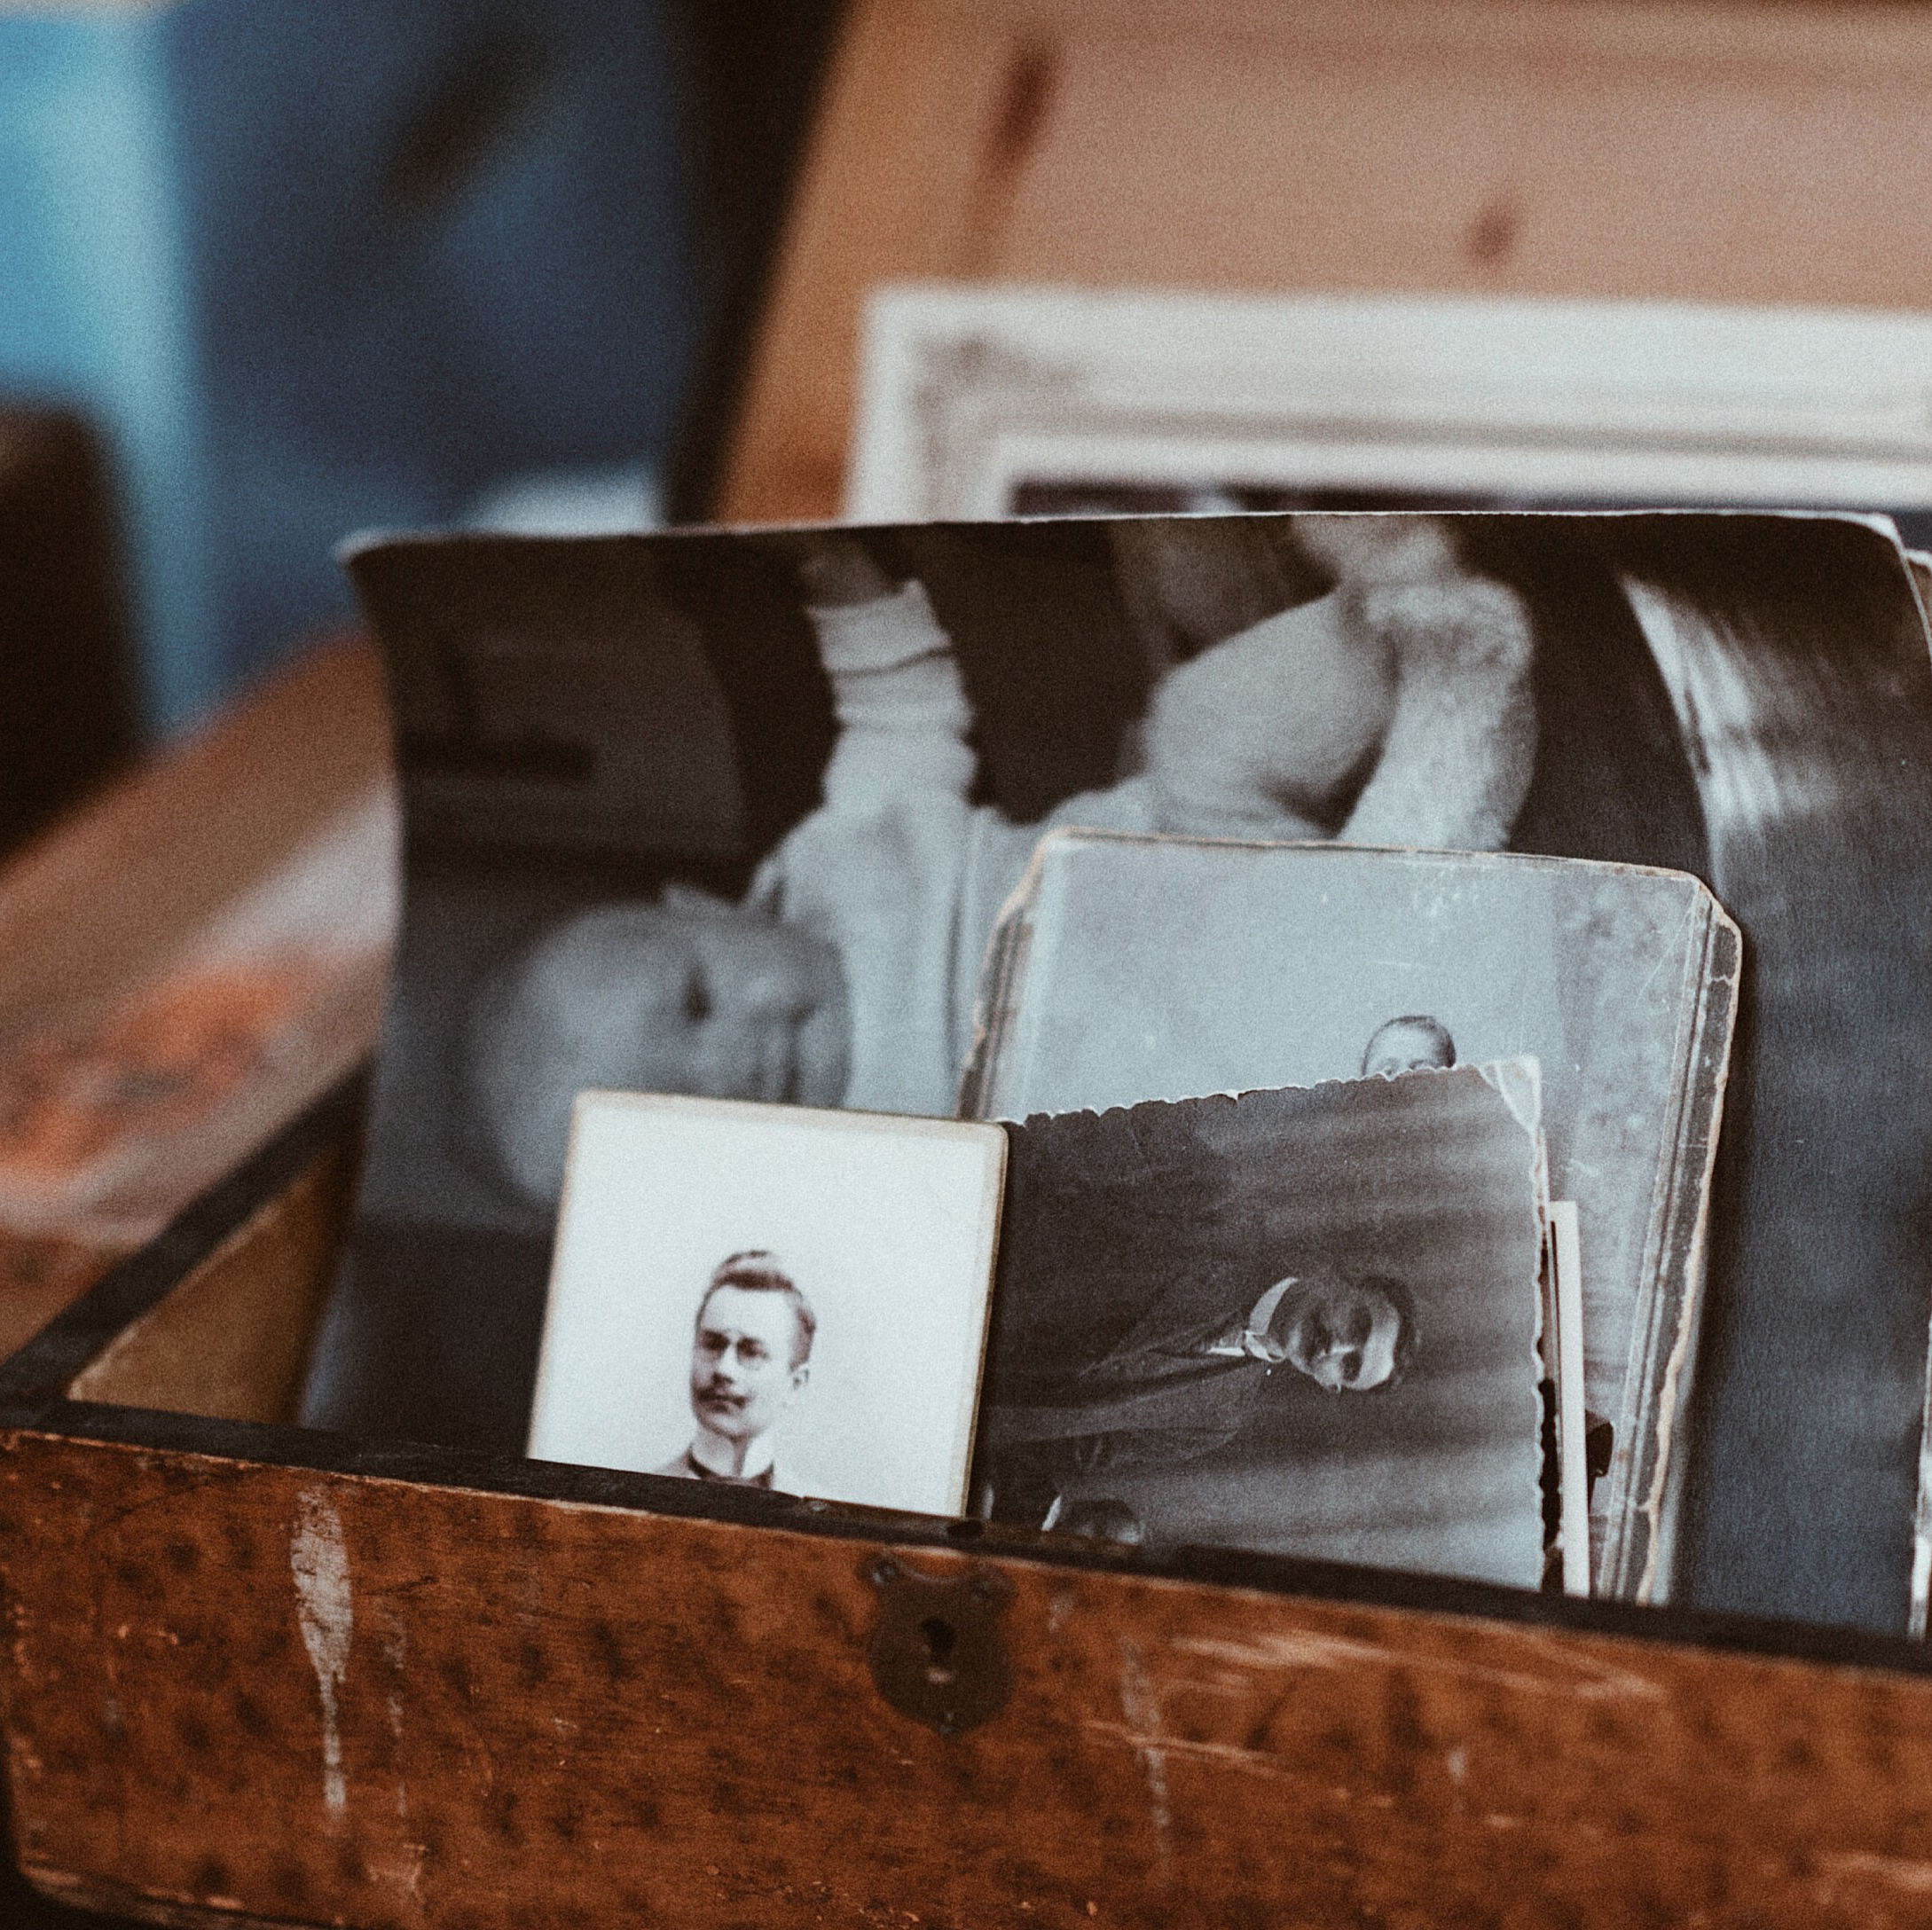 A box full of family photos